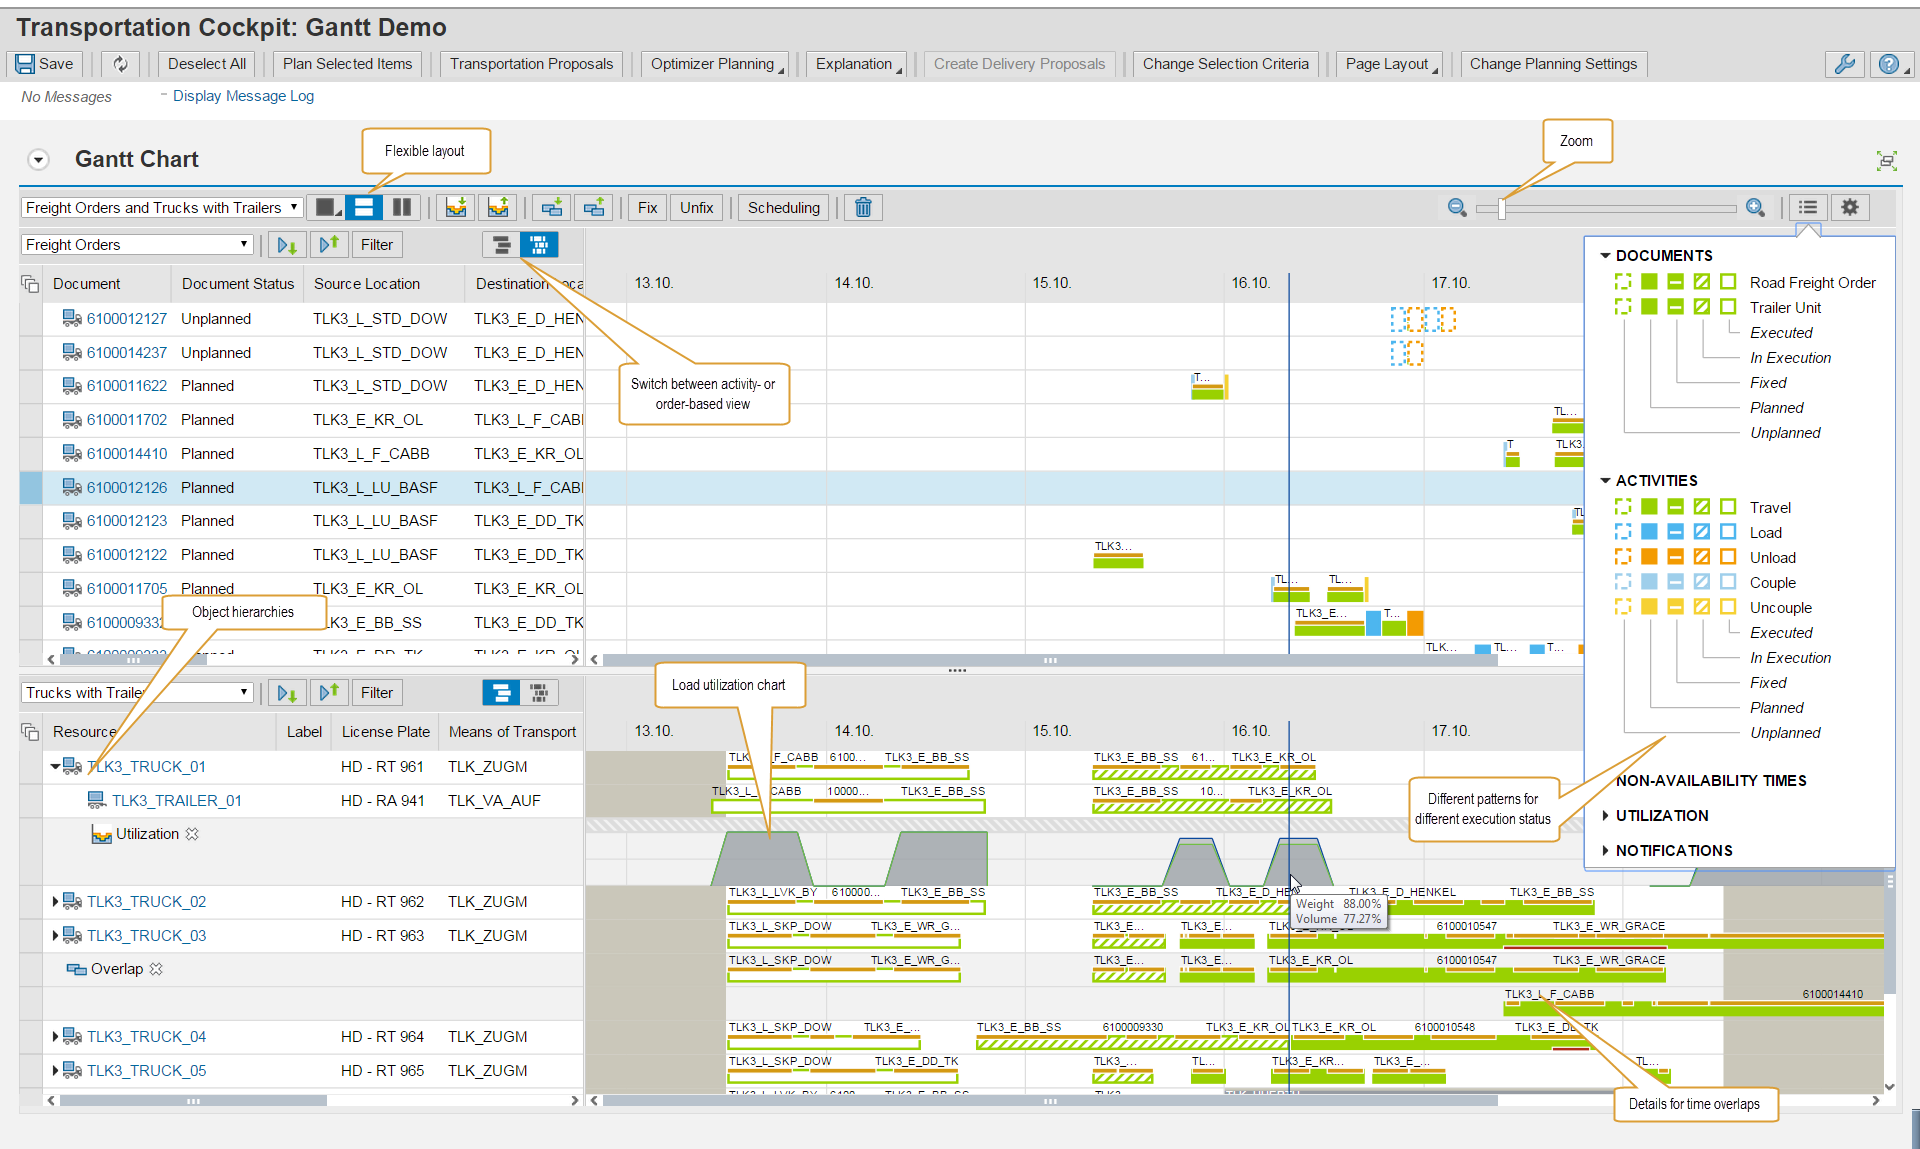 Sap tm gantt chart sap blogs the gantt chart should support in getting a quick overview of the planning and execution status of a transportation plan nvjuhfo Images